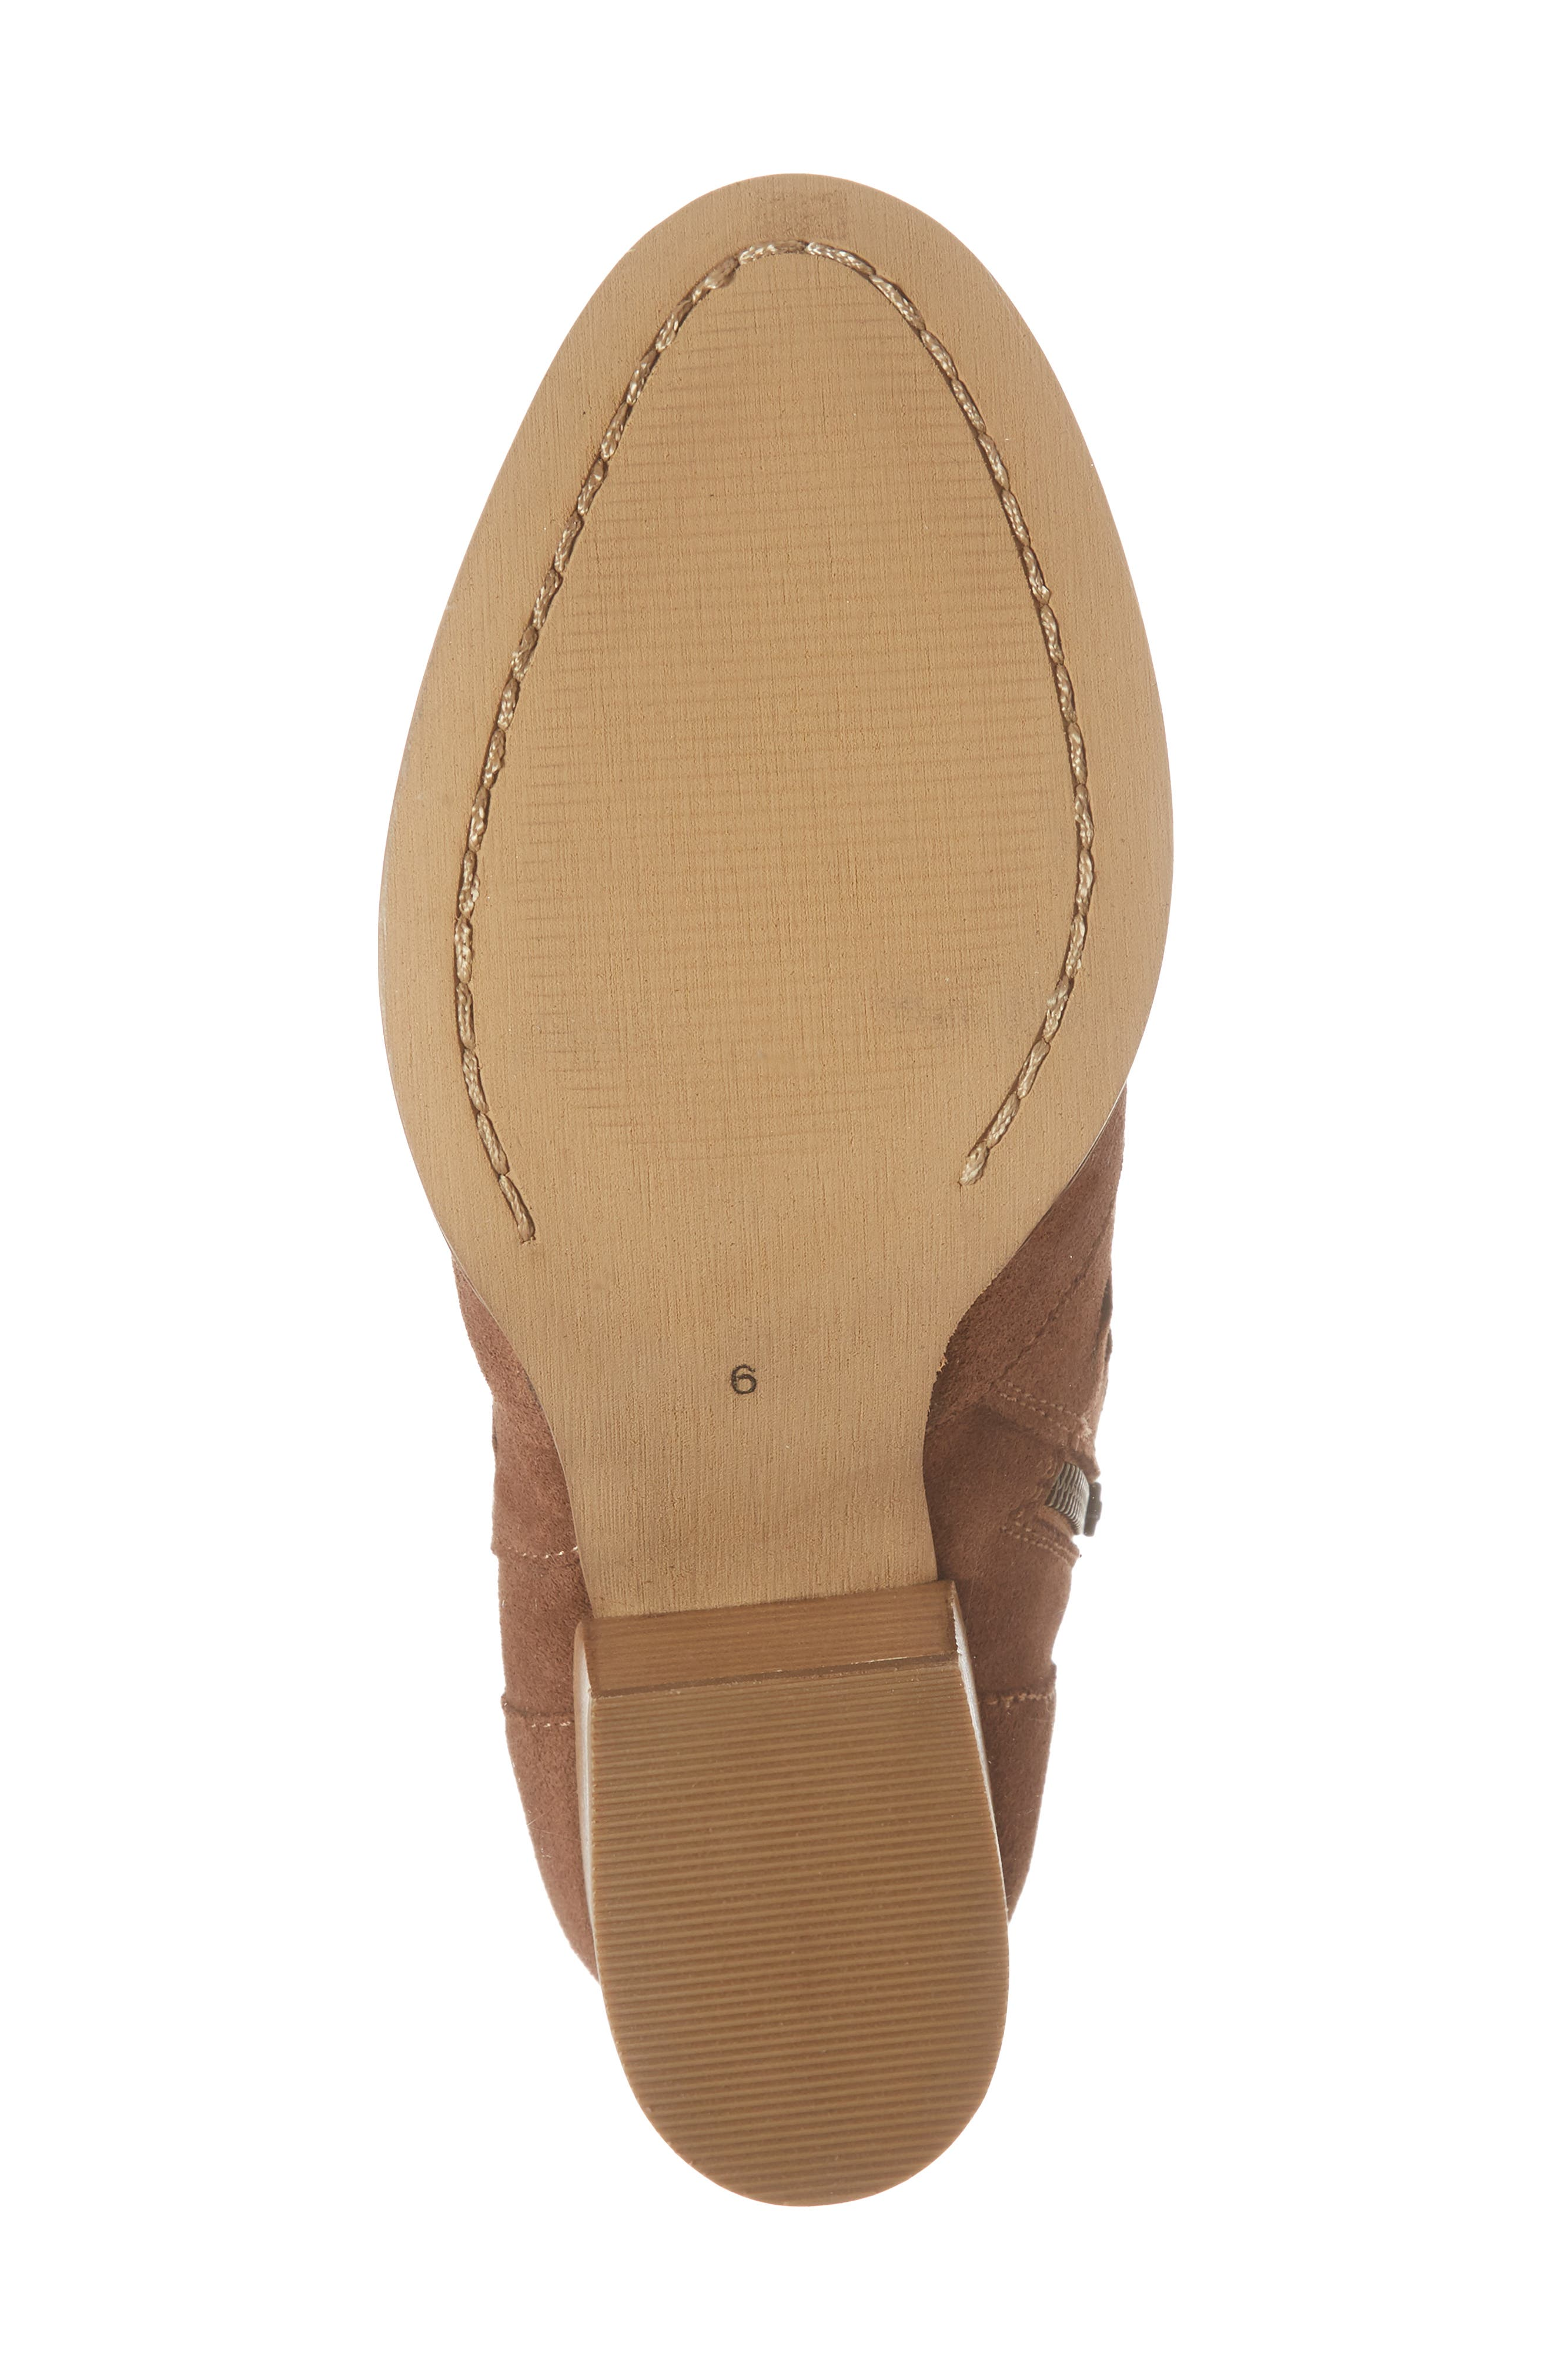 Adriana Western Bootie,                             Alternate thumbnail 6, color,                             Whiskey Suede